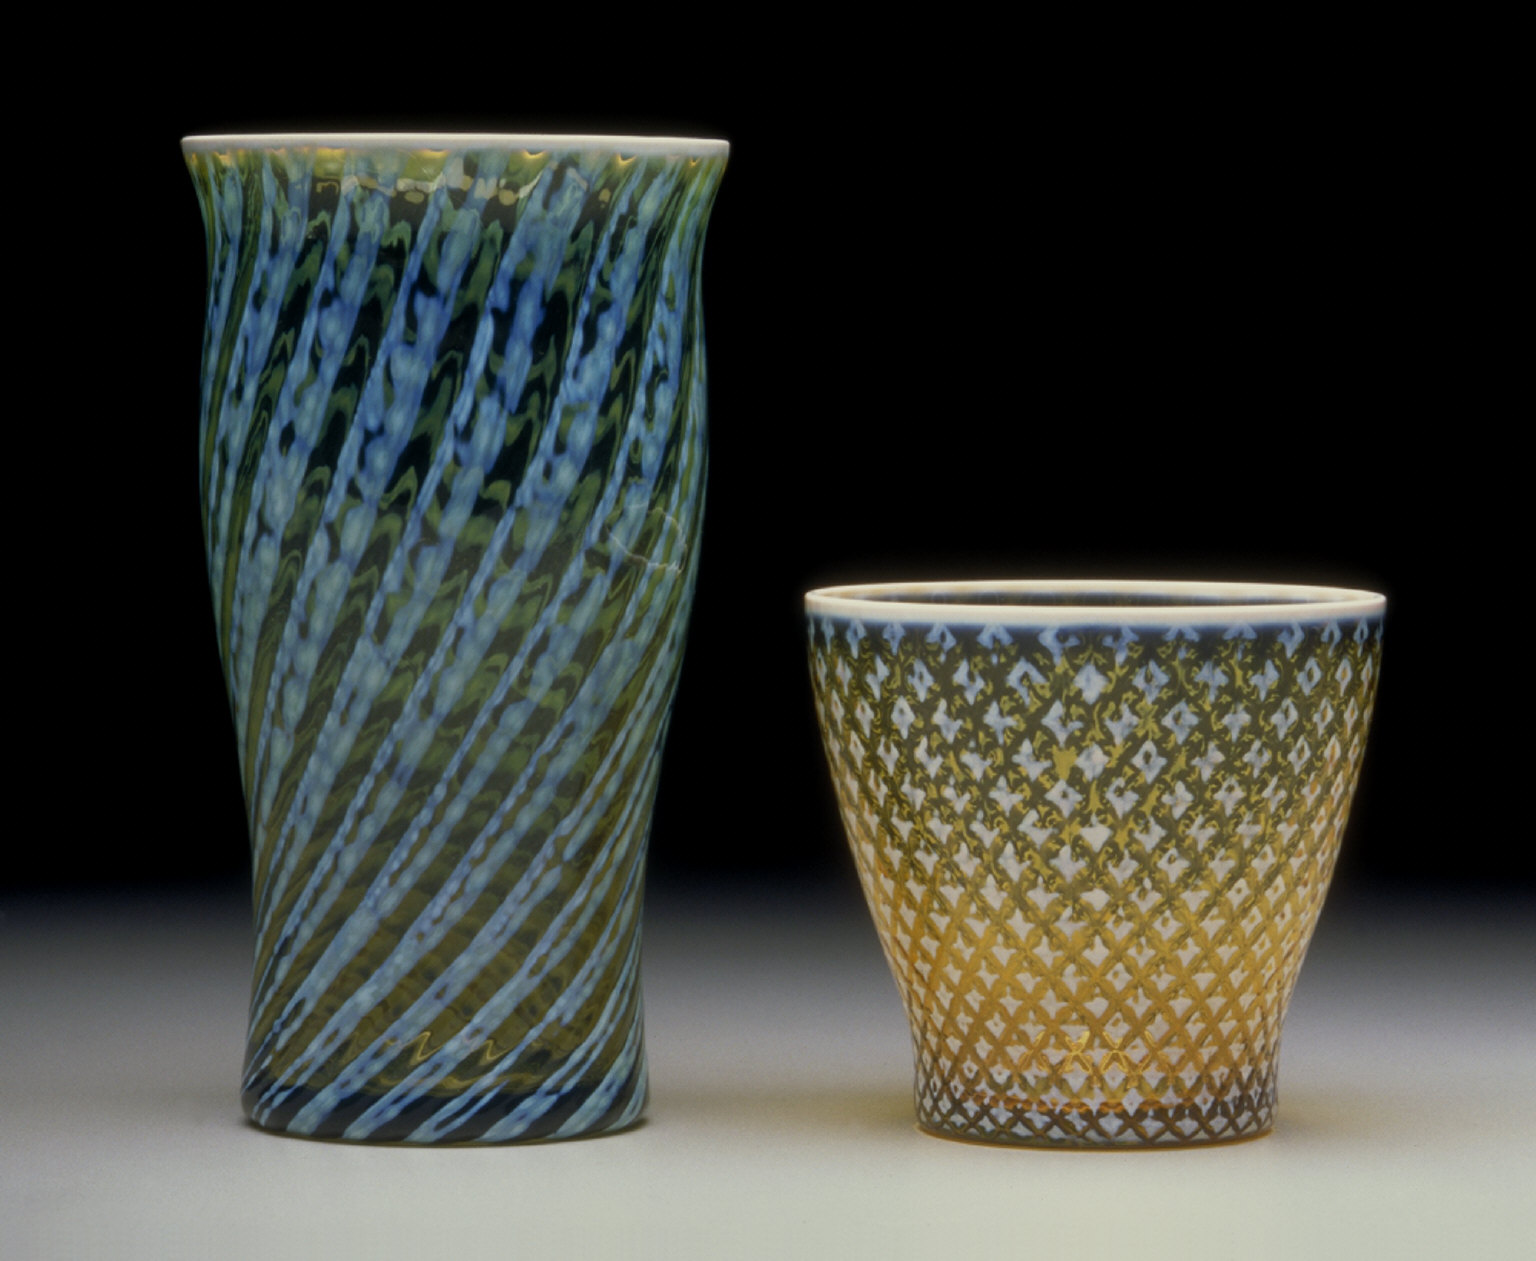 'Homespun' tumbler in 'Moss Green' colored glass